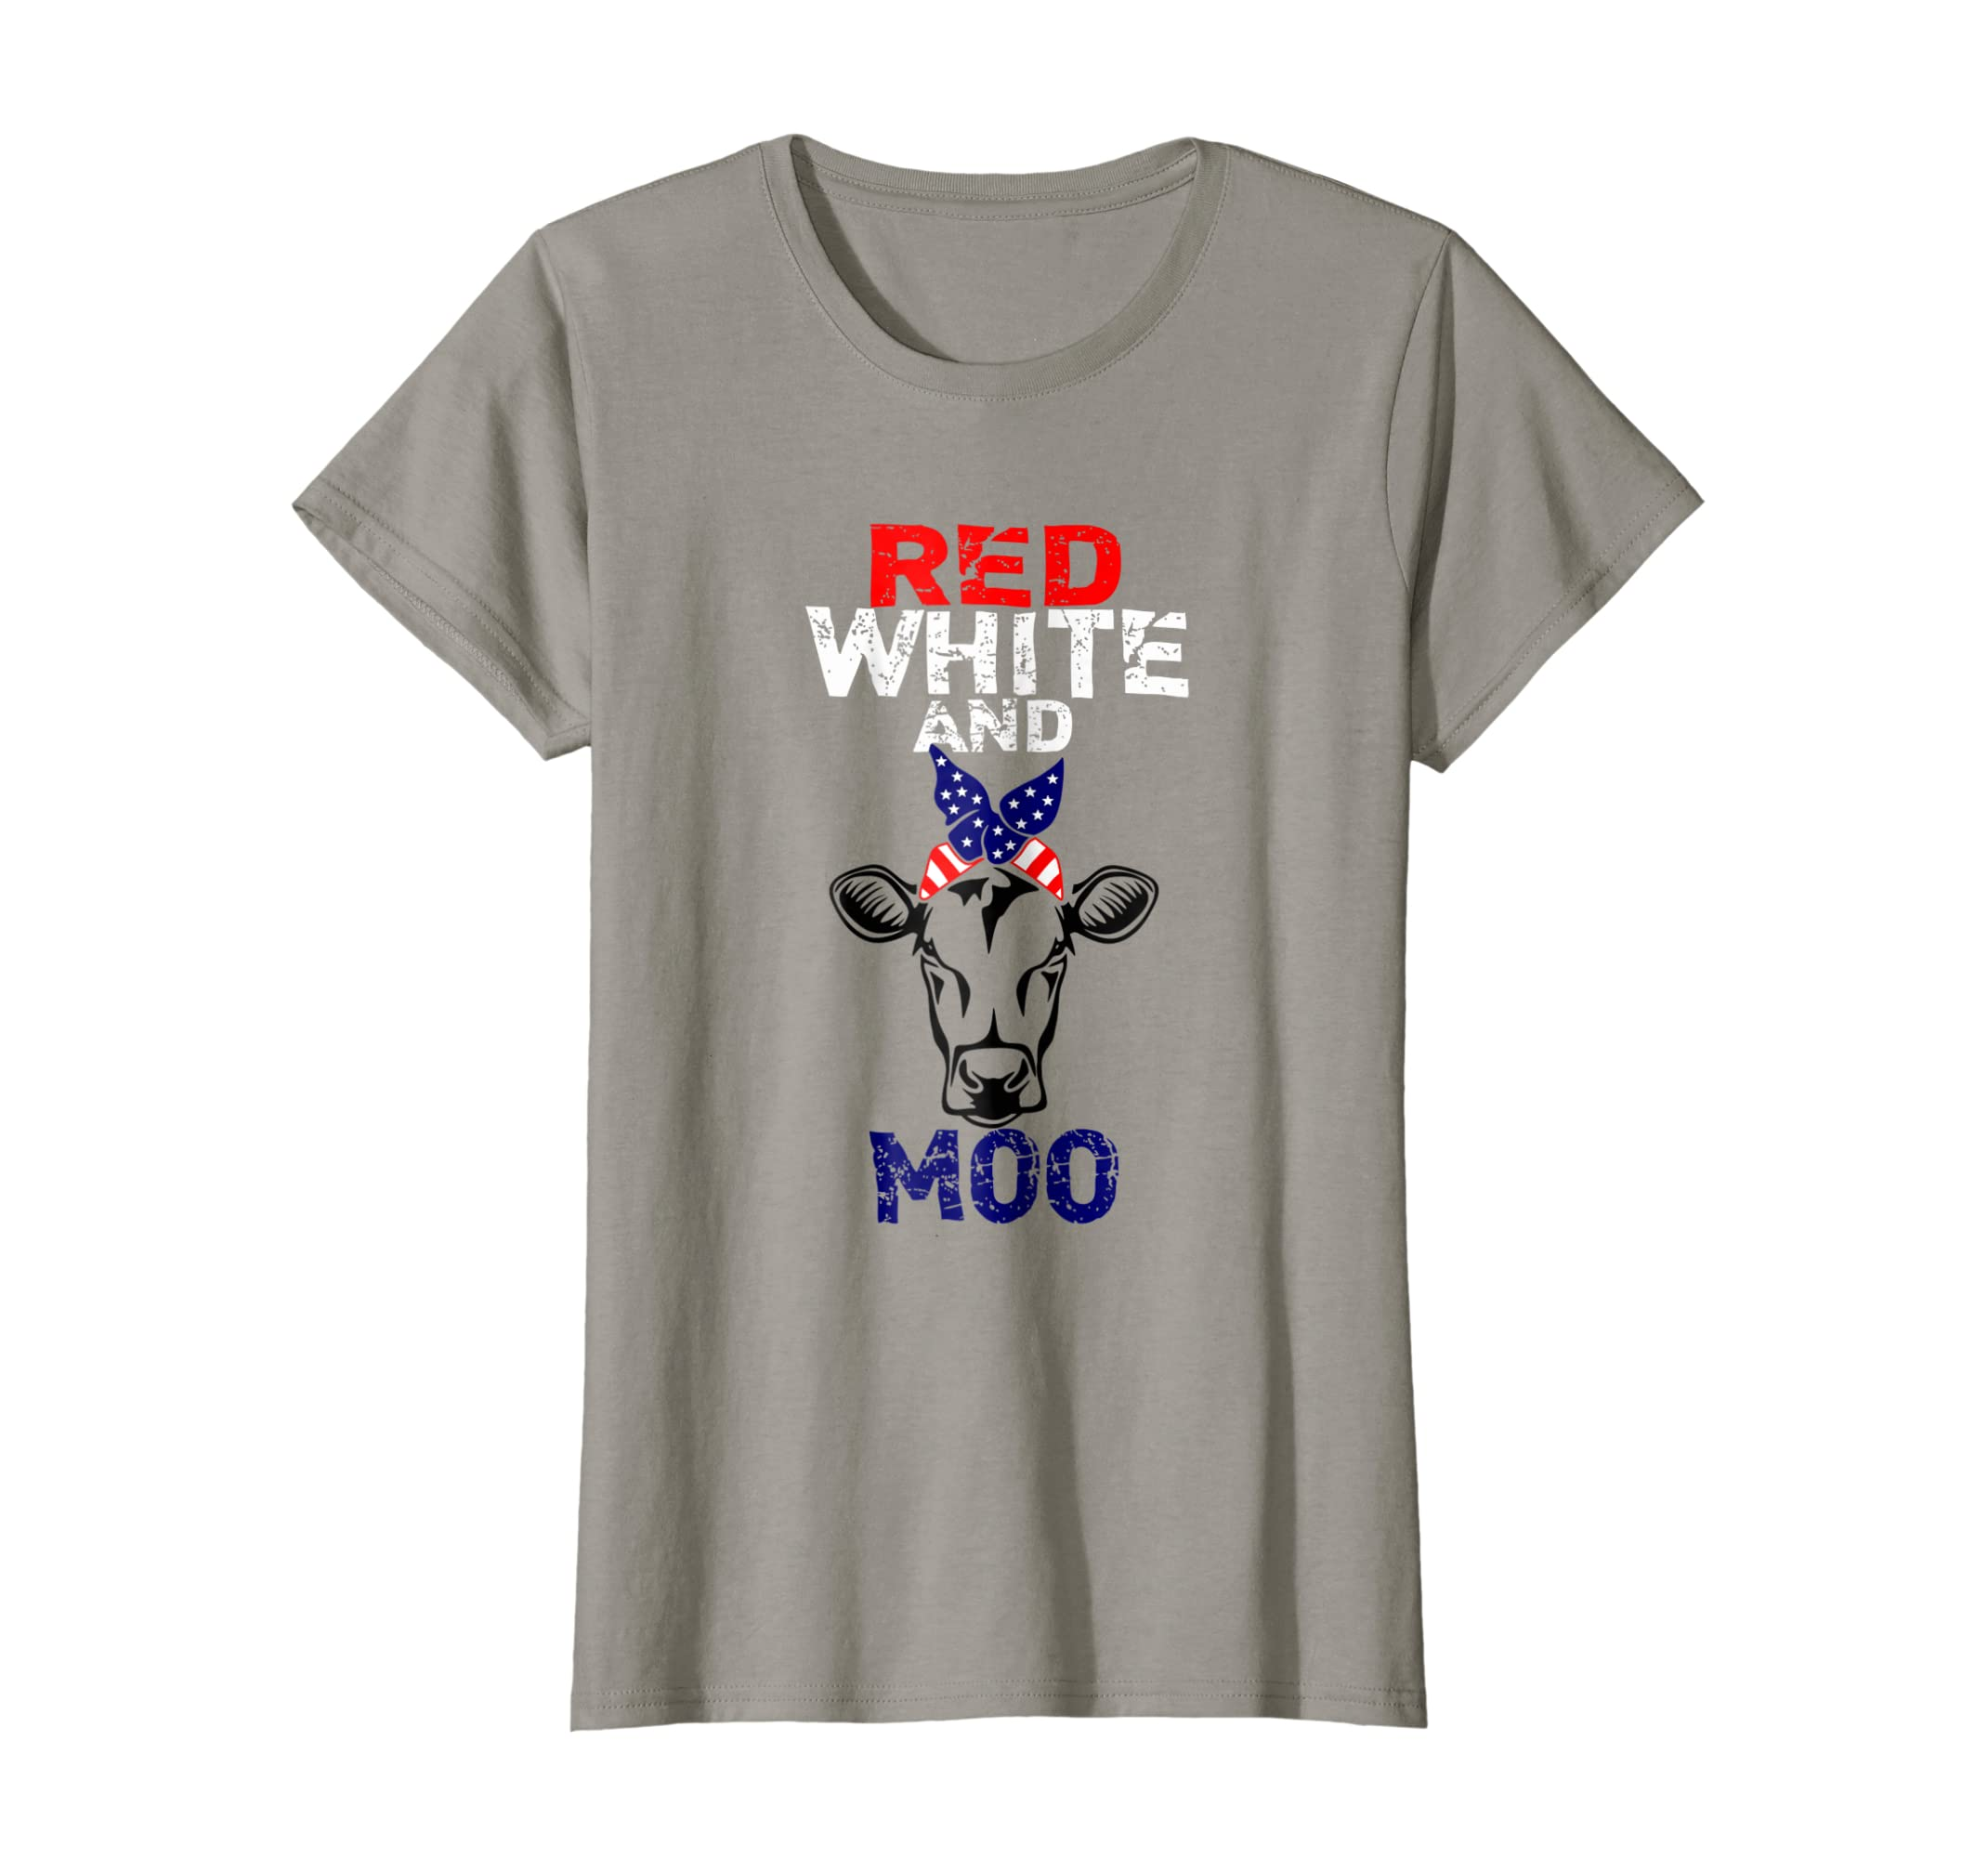 b53bd6ef Amazon.com: Red White and Moo Patriotic USA Flag Bandana Cow T-Shirt:  Clothing